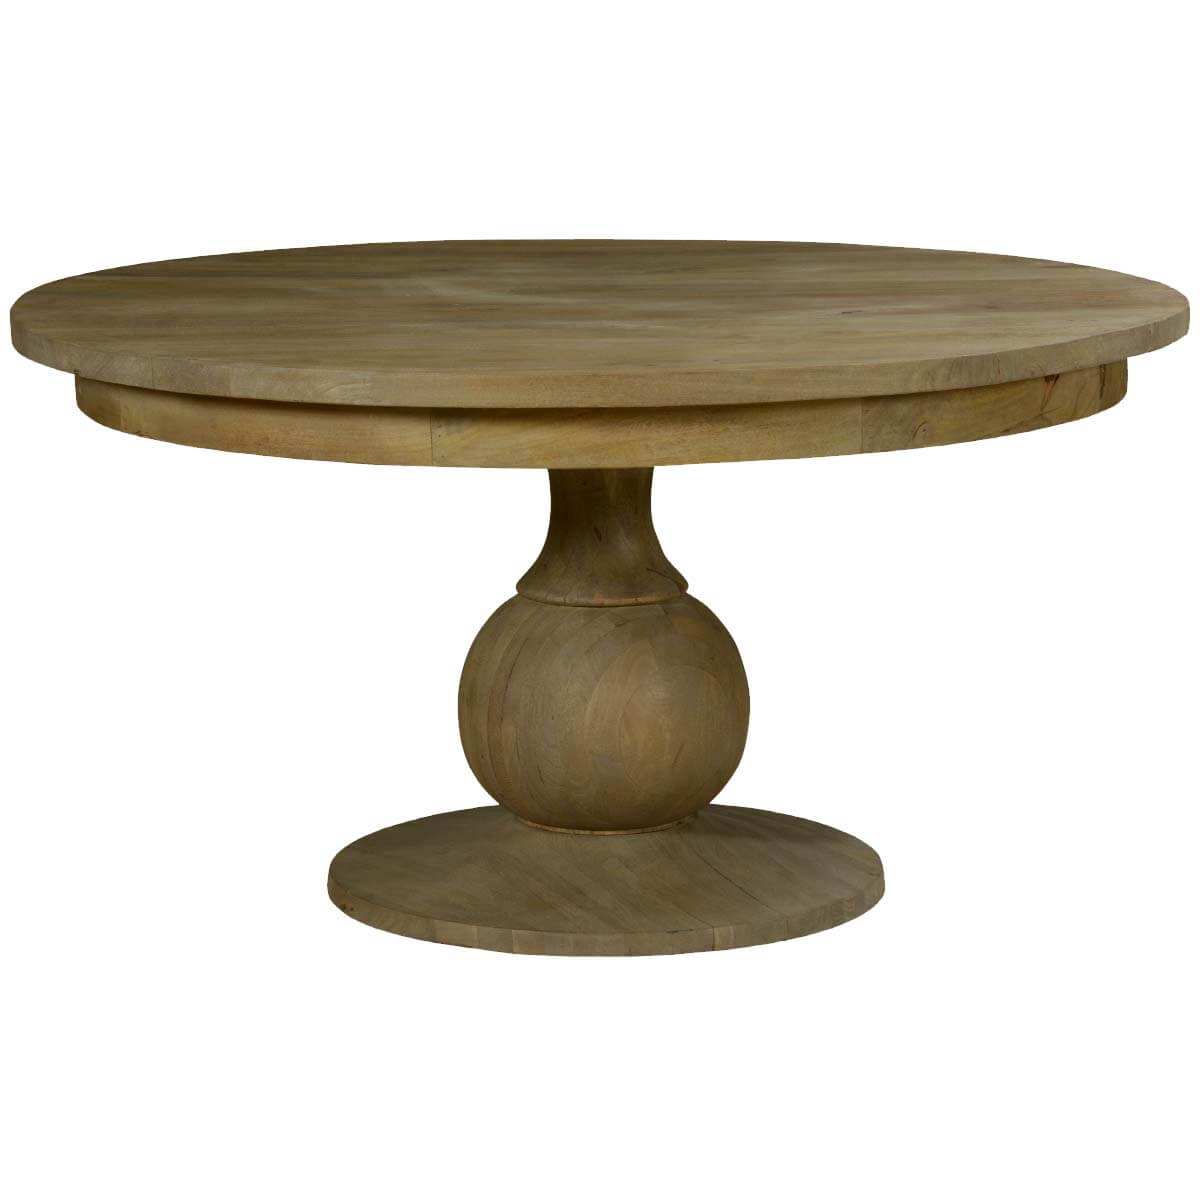 Smokey tan solid mango wood 60 round pedestal dining table for Solid wood round tables dining